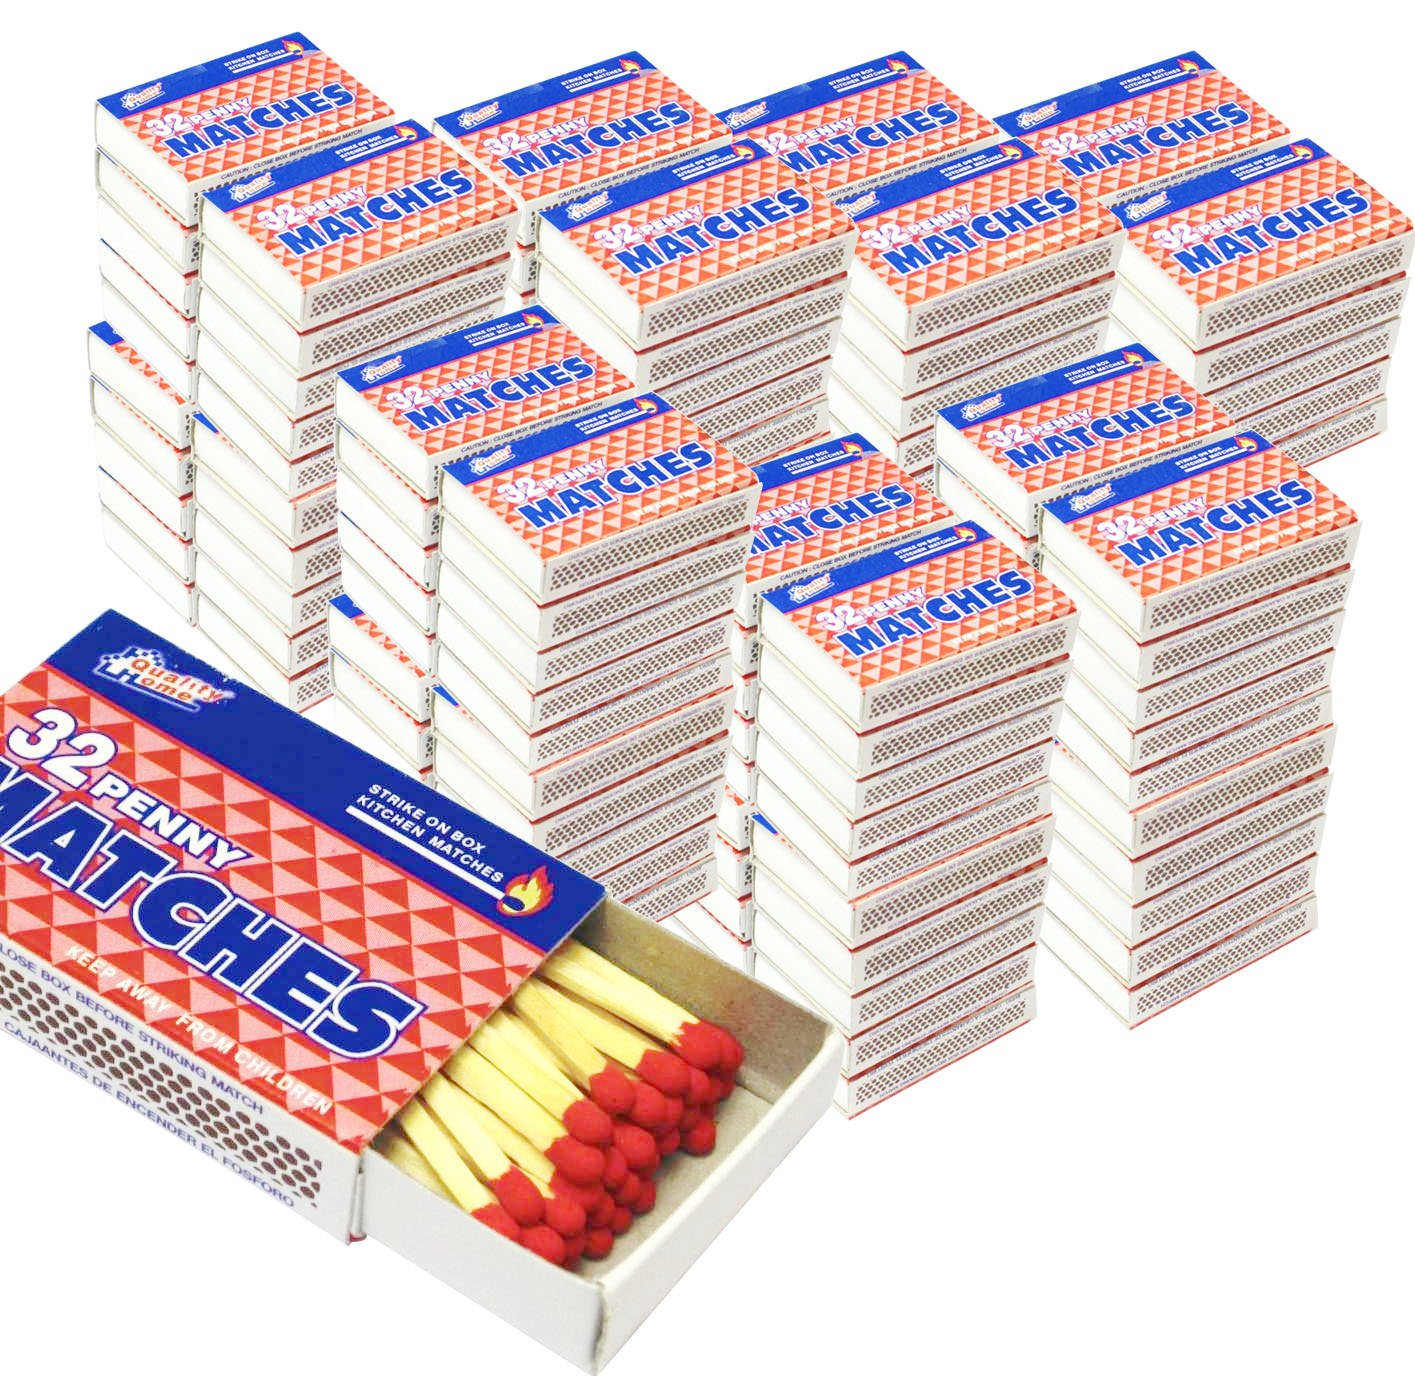 200 Packs Matches 32 Count Strike on Box Kitchen Camping Fire Wholesale Lot Bulk